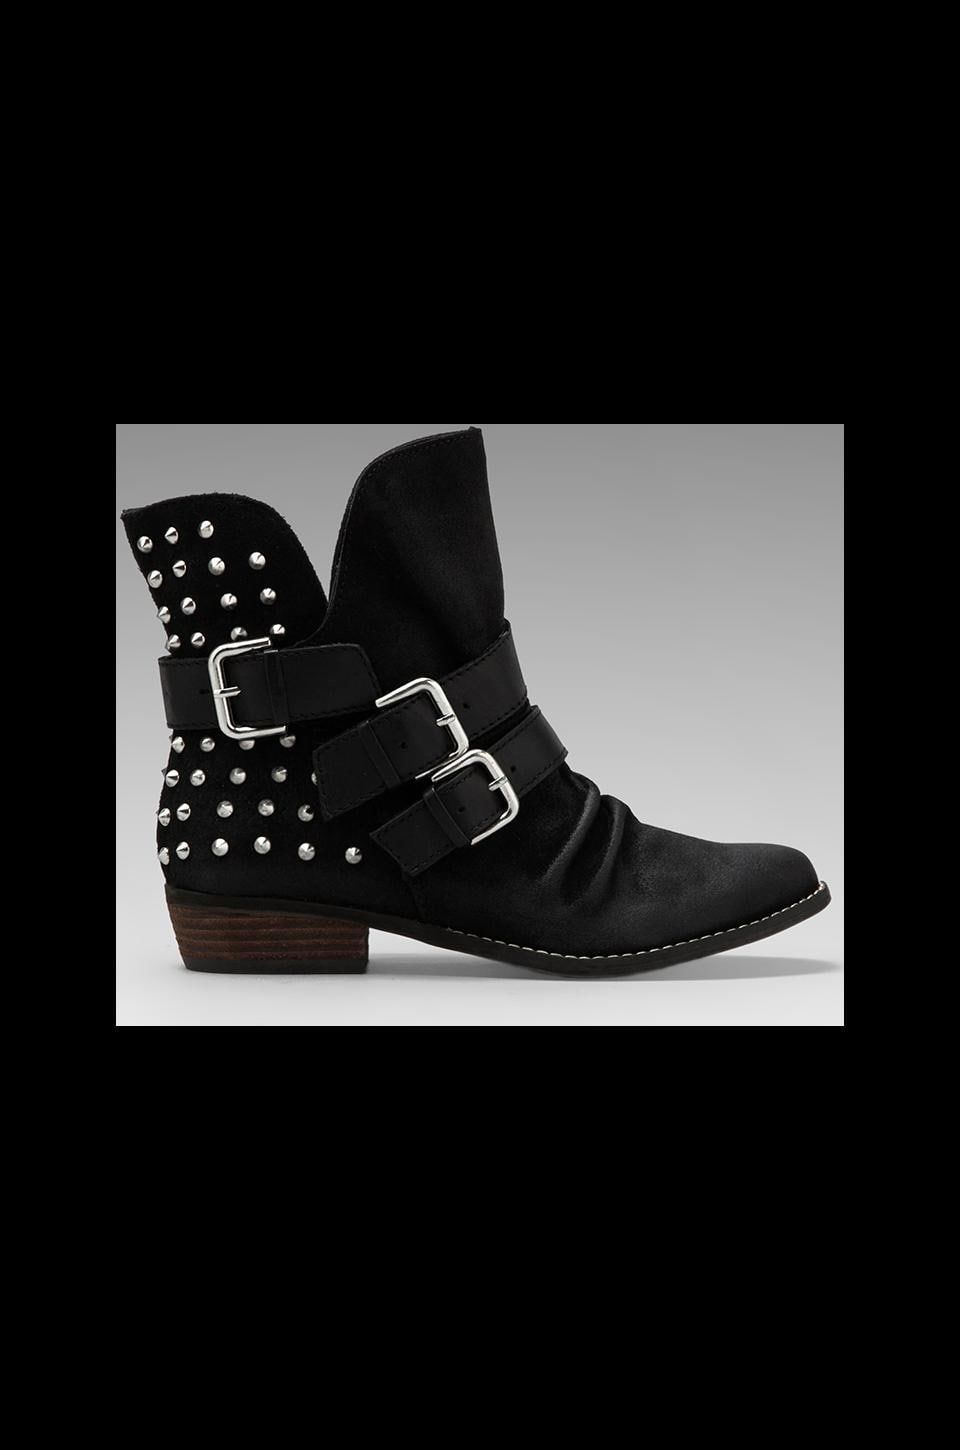 Dolce Vita Malika Boot in Black